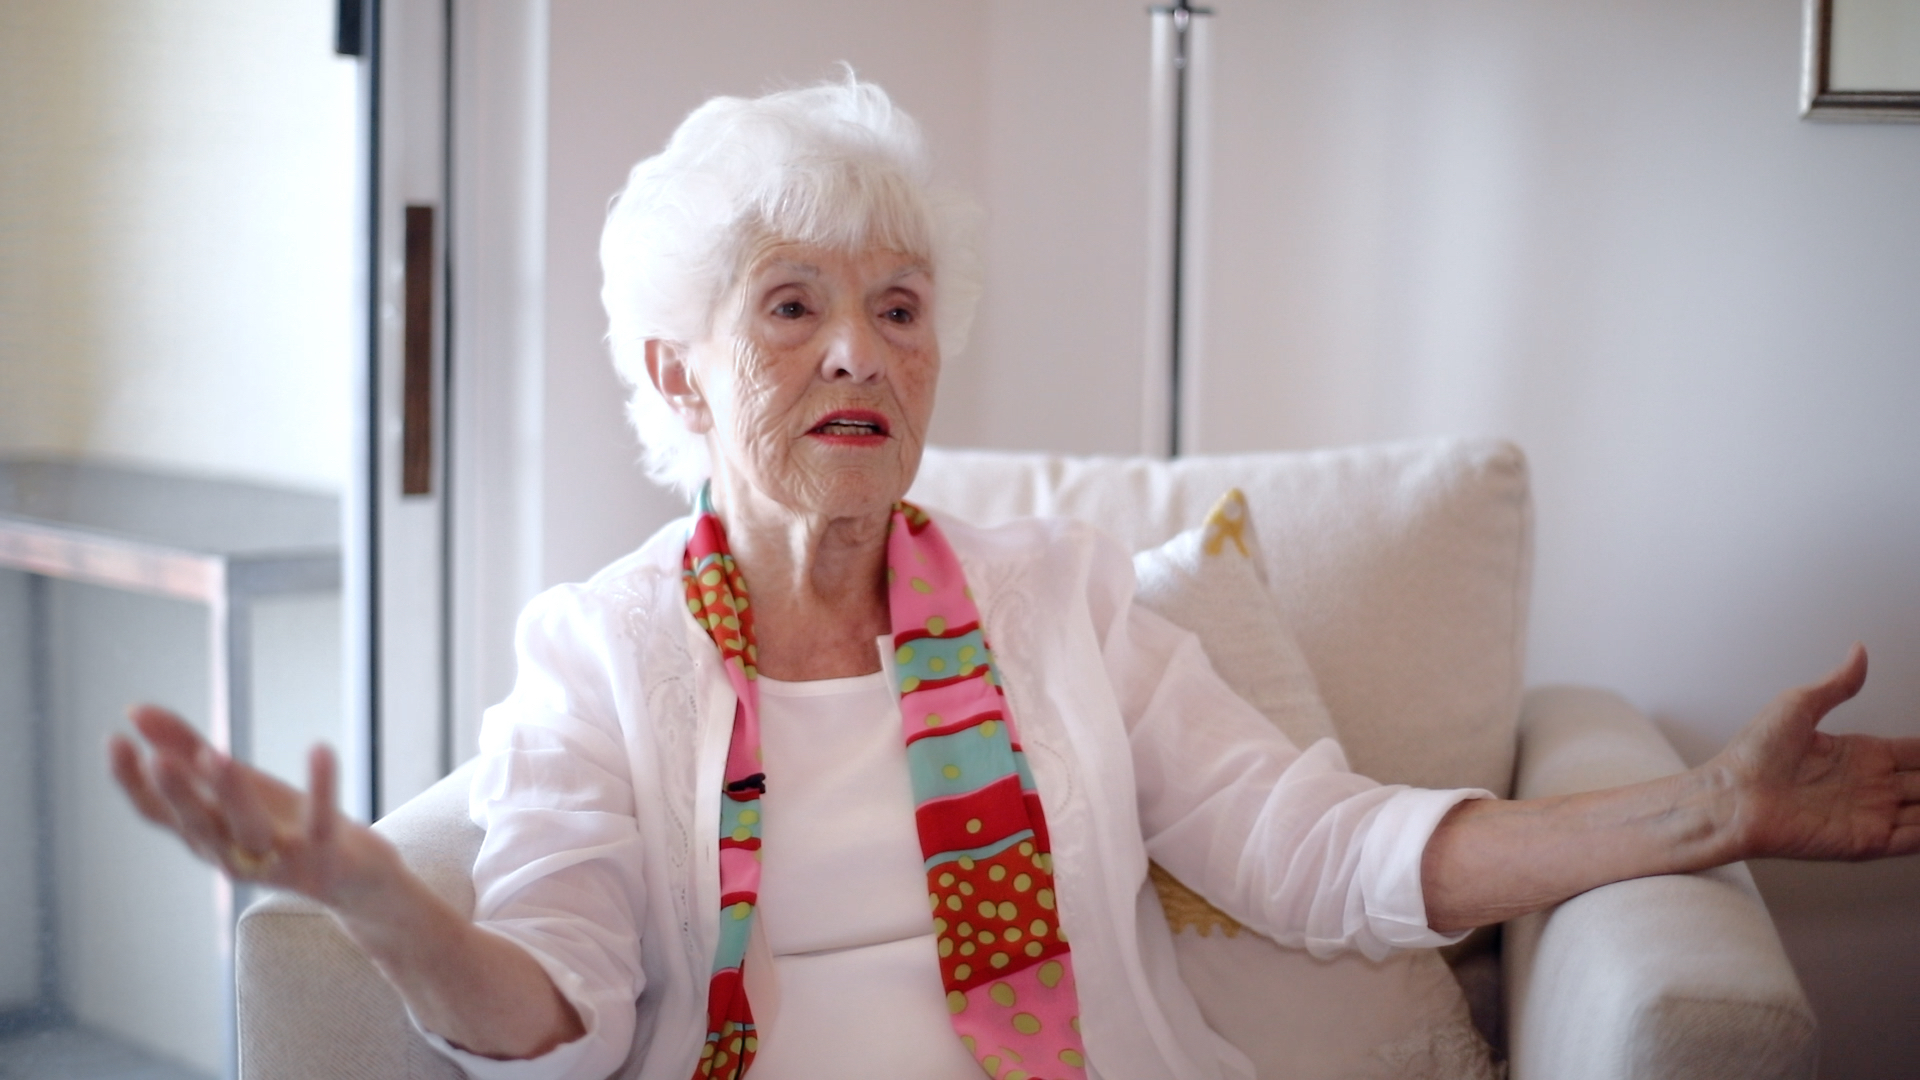 Maria, a subject in Robin Leacock's documentary